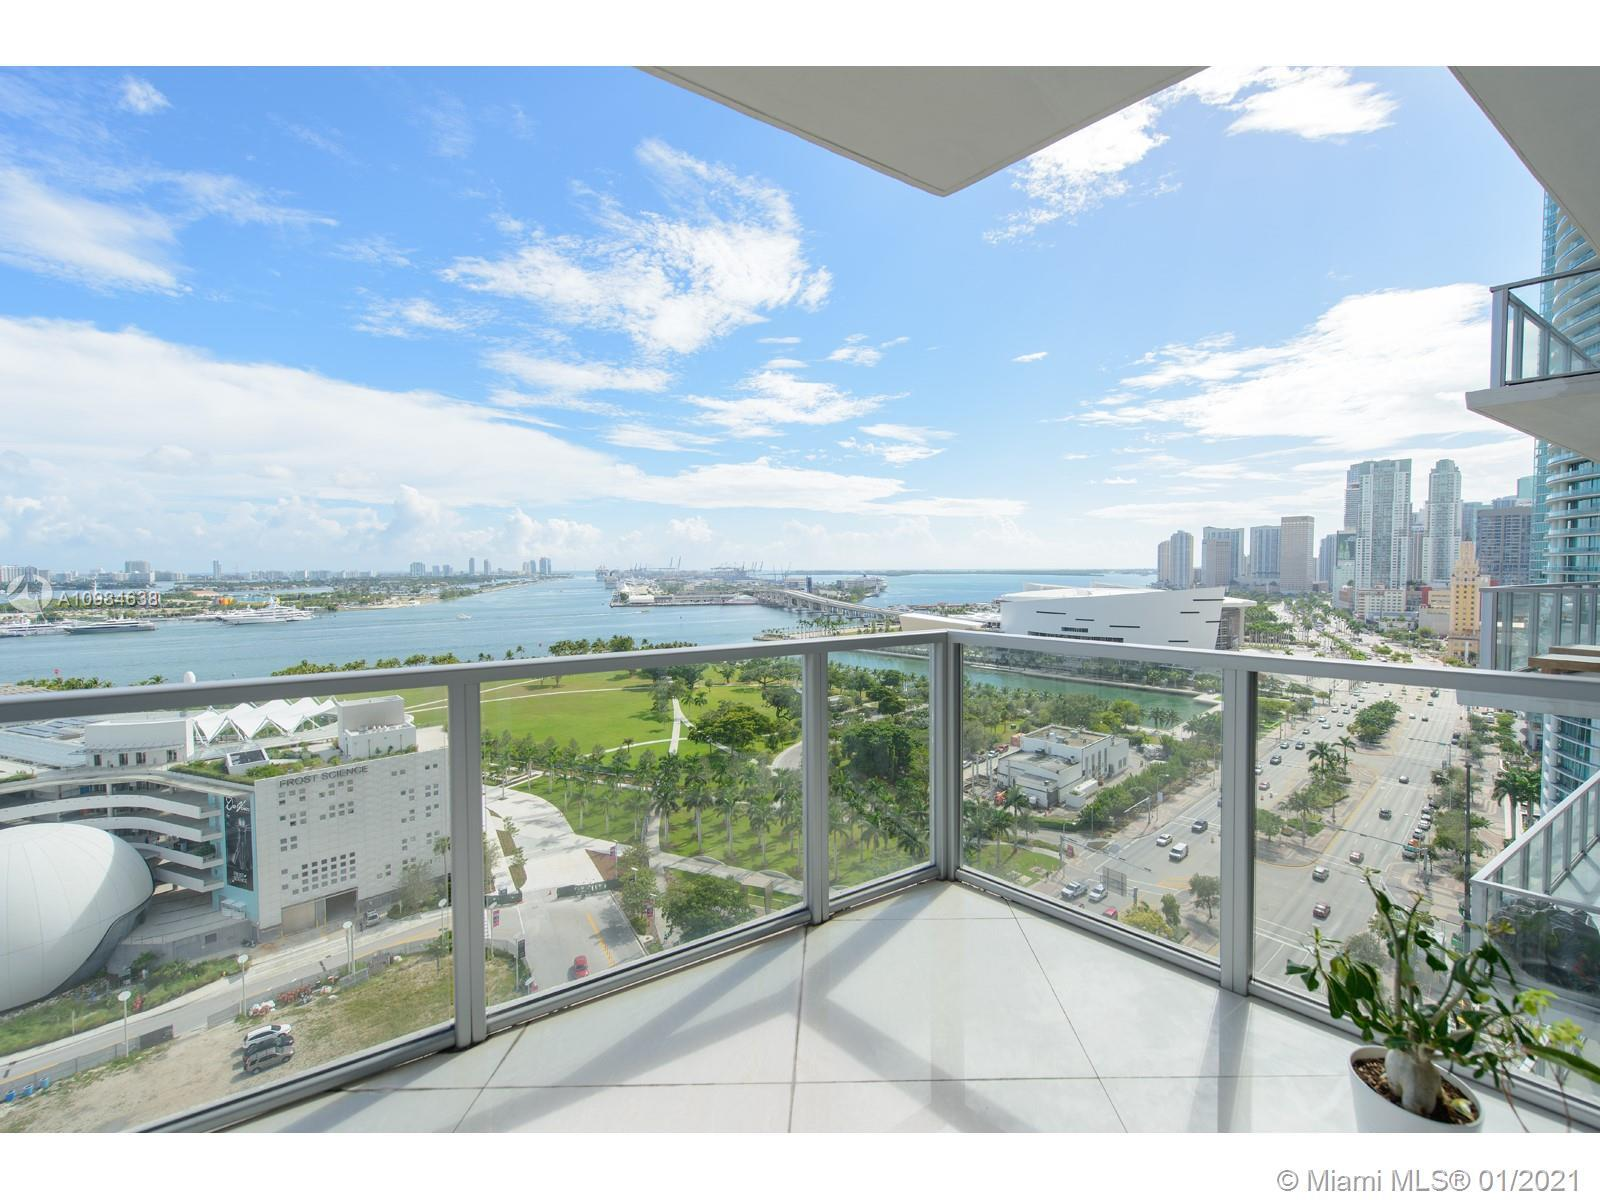 Uncompromised view of Biscayne Bay and Downtown Miami from this large 3 bedroom / 3.5 bathroom home